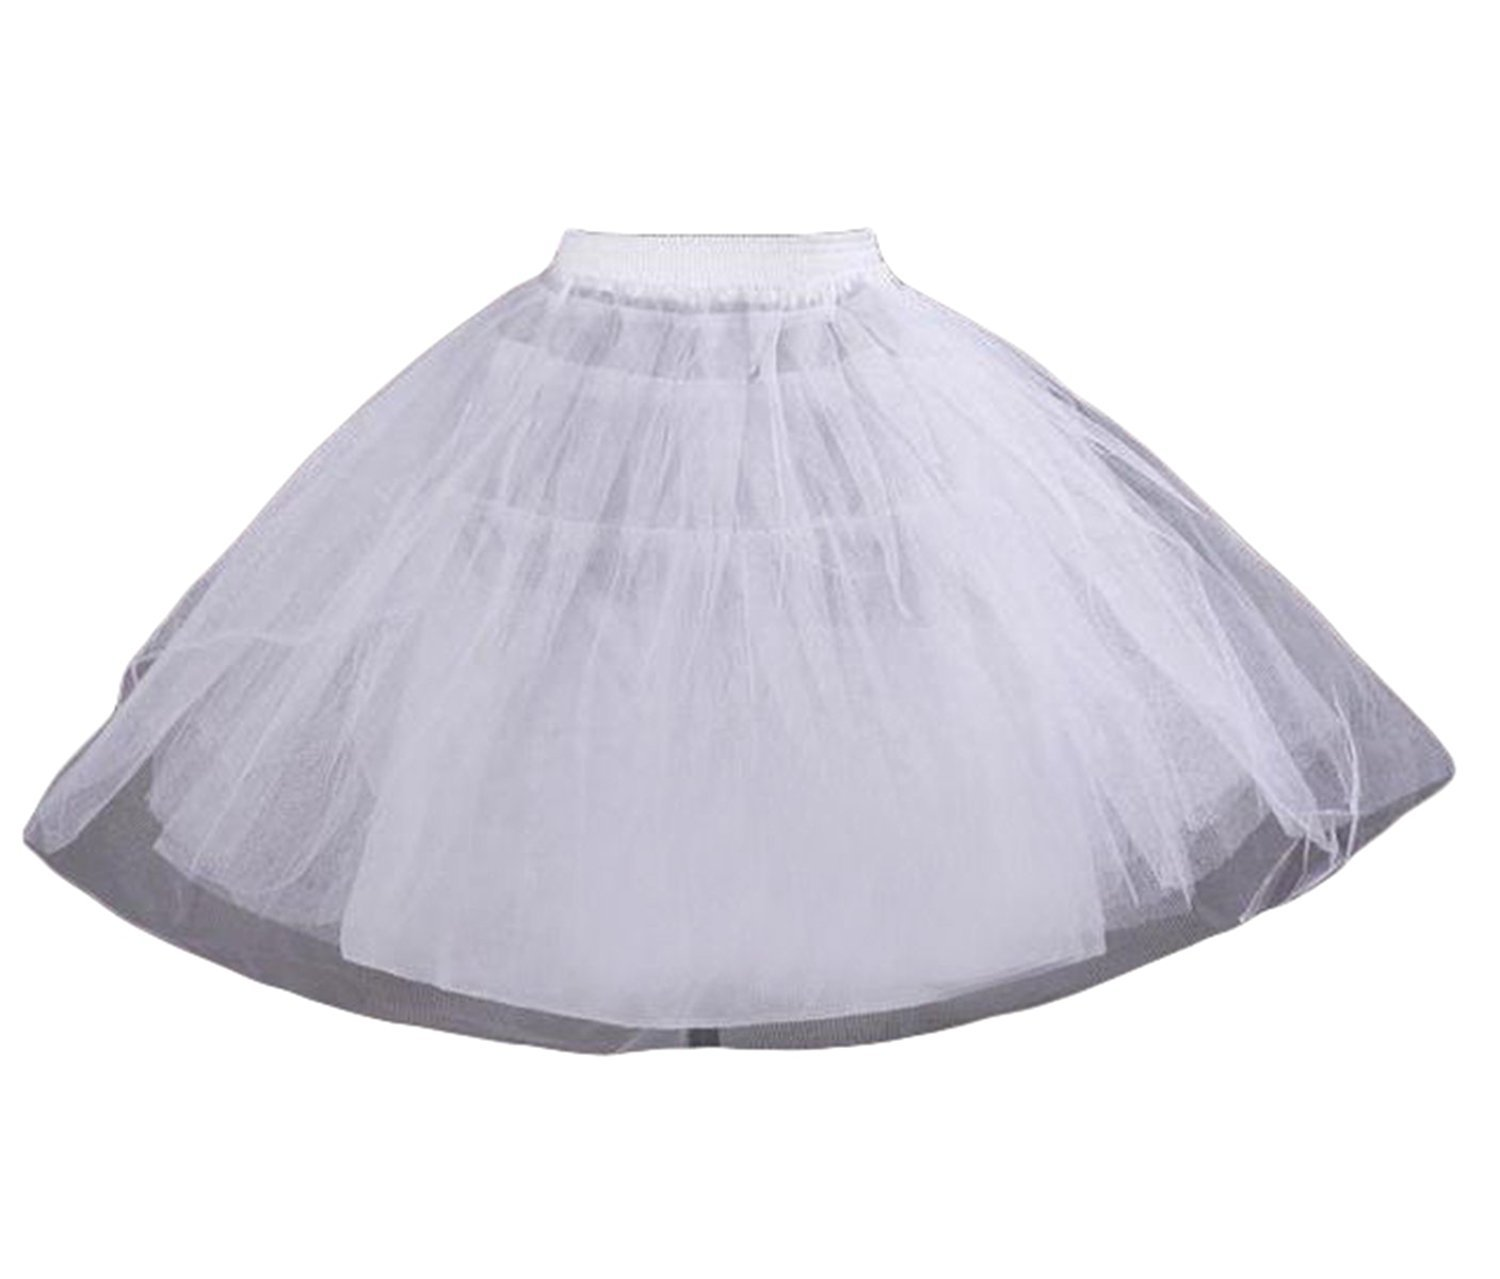 Dannifore Girl's White Short Crinoline Petticoats Slips Underskirt for Wedding Party Style6,OneSize